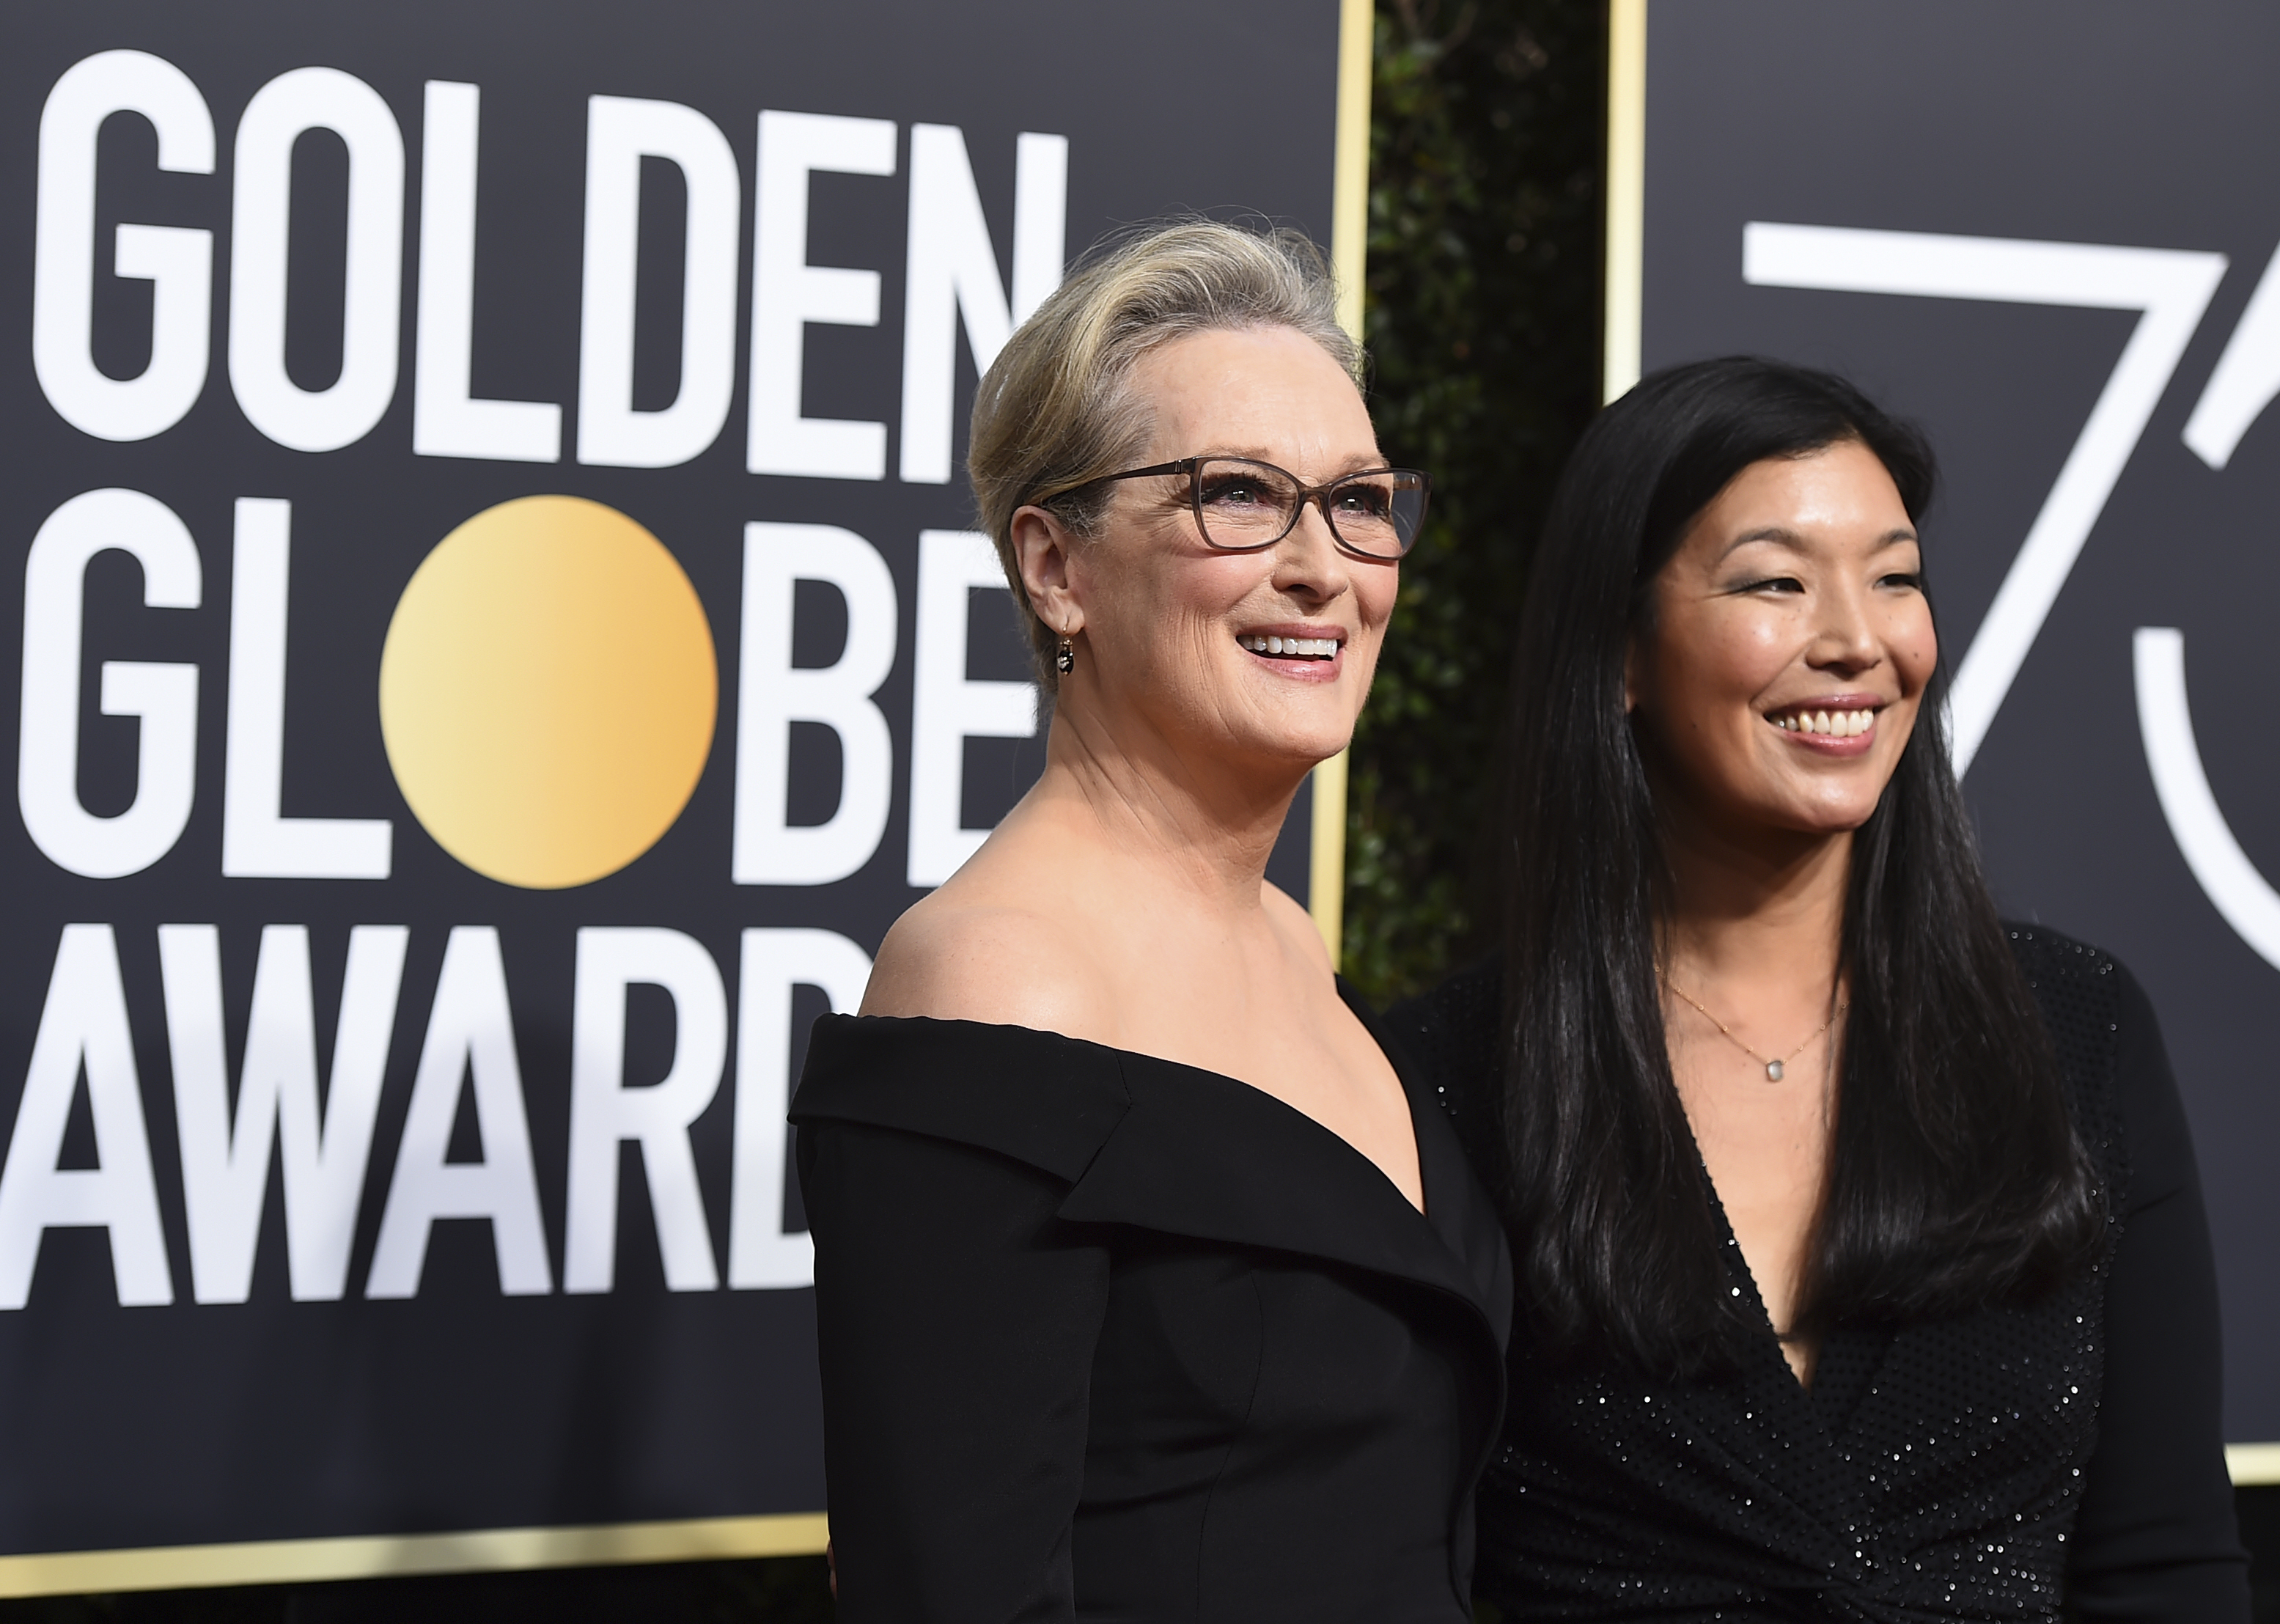 Golden Globes: 5 Actresses Who Brought Activists to the Show